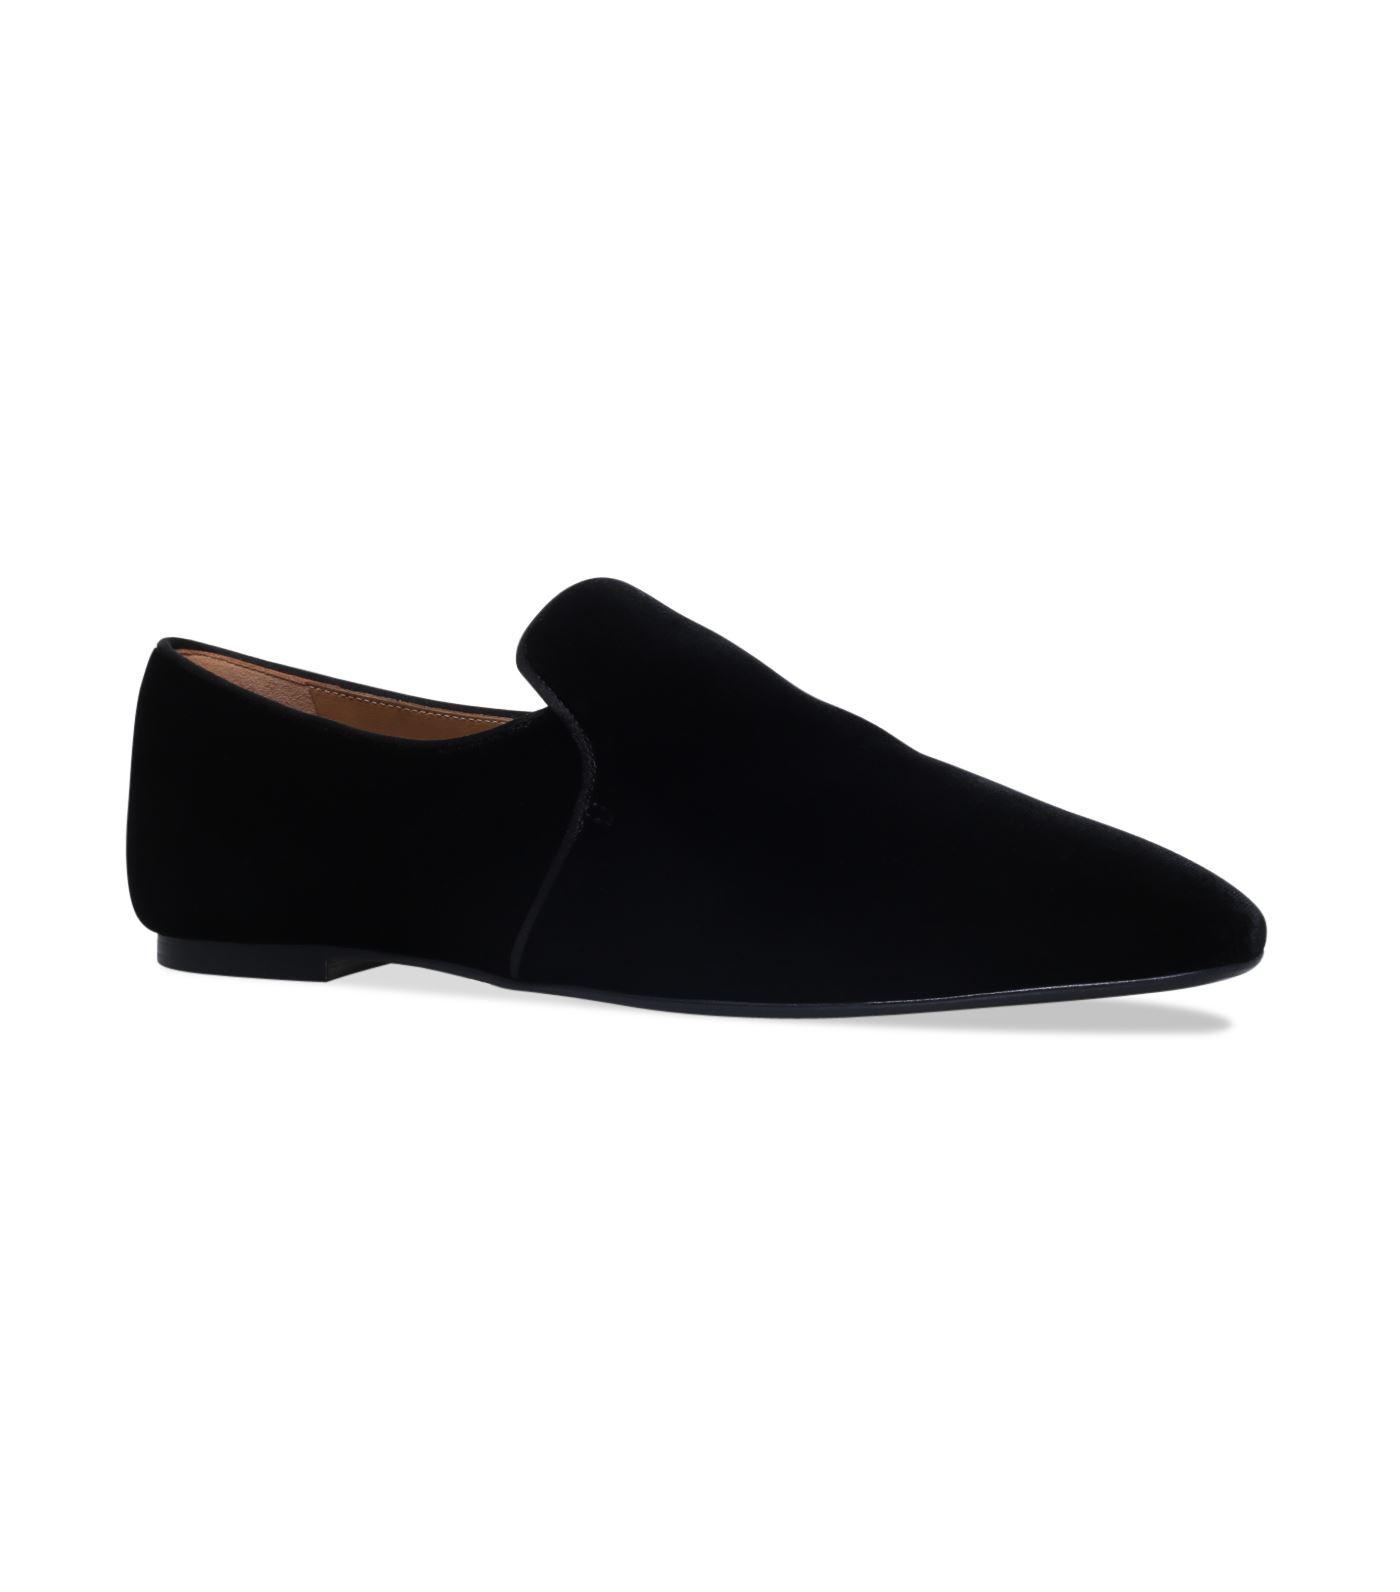 13085086c6d Lyst - The Row Alys Loafer in Black for Men